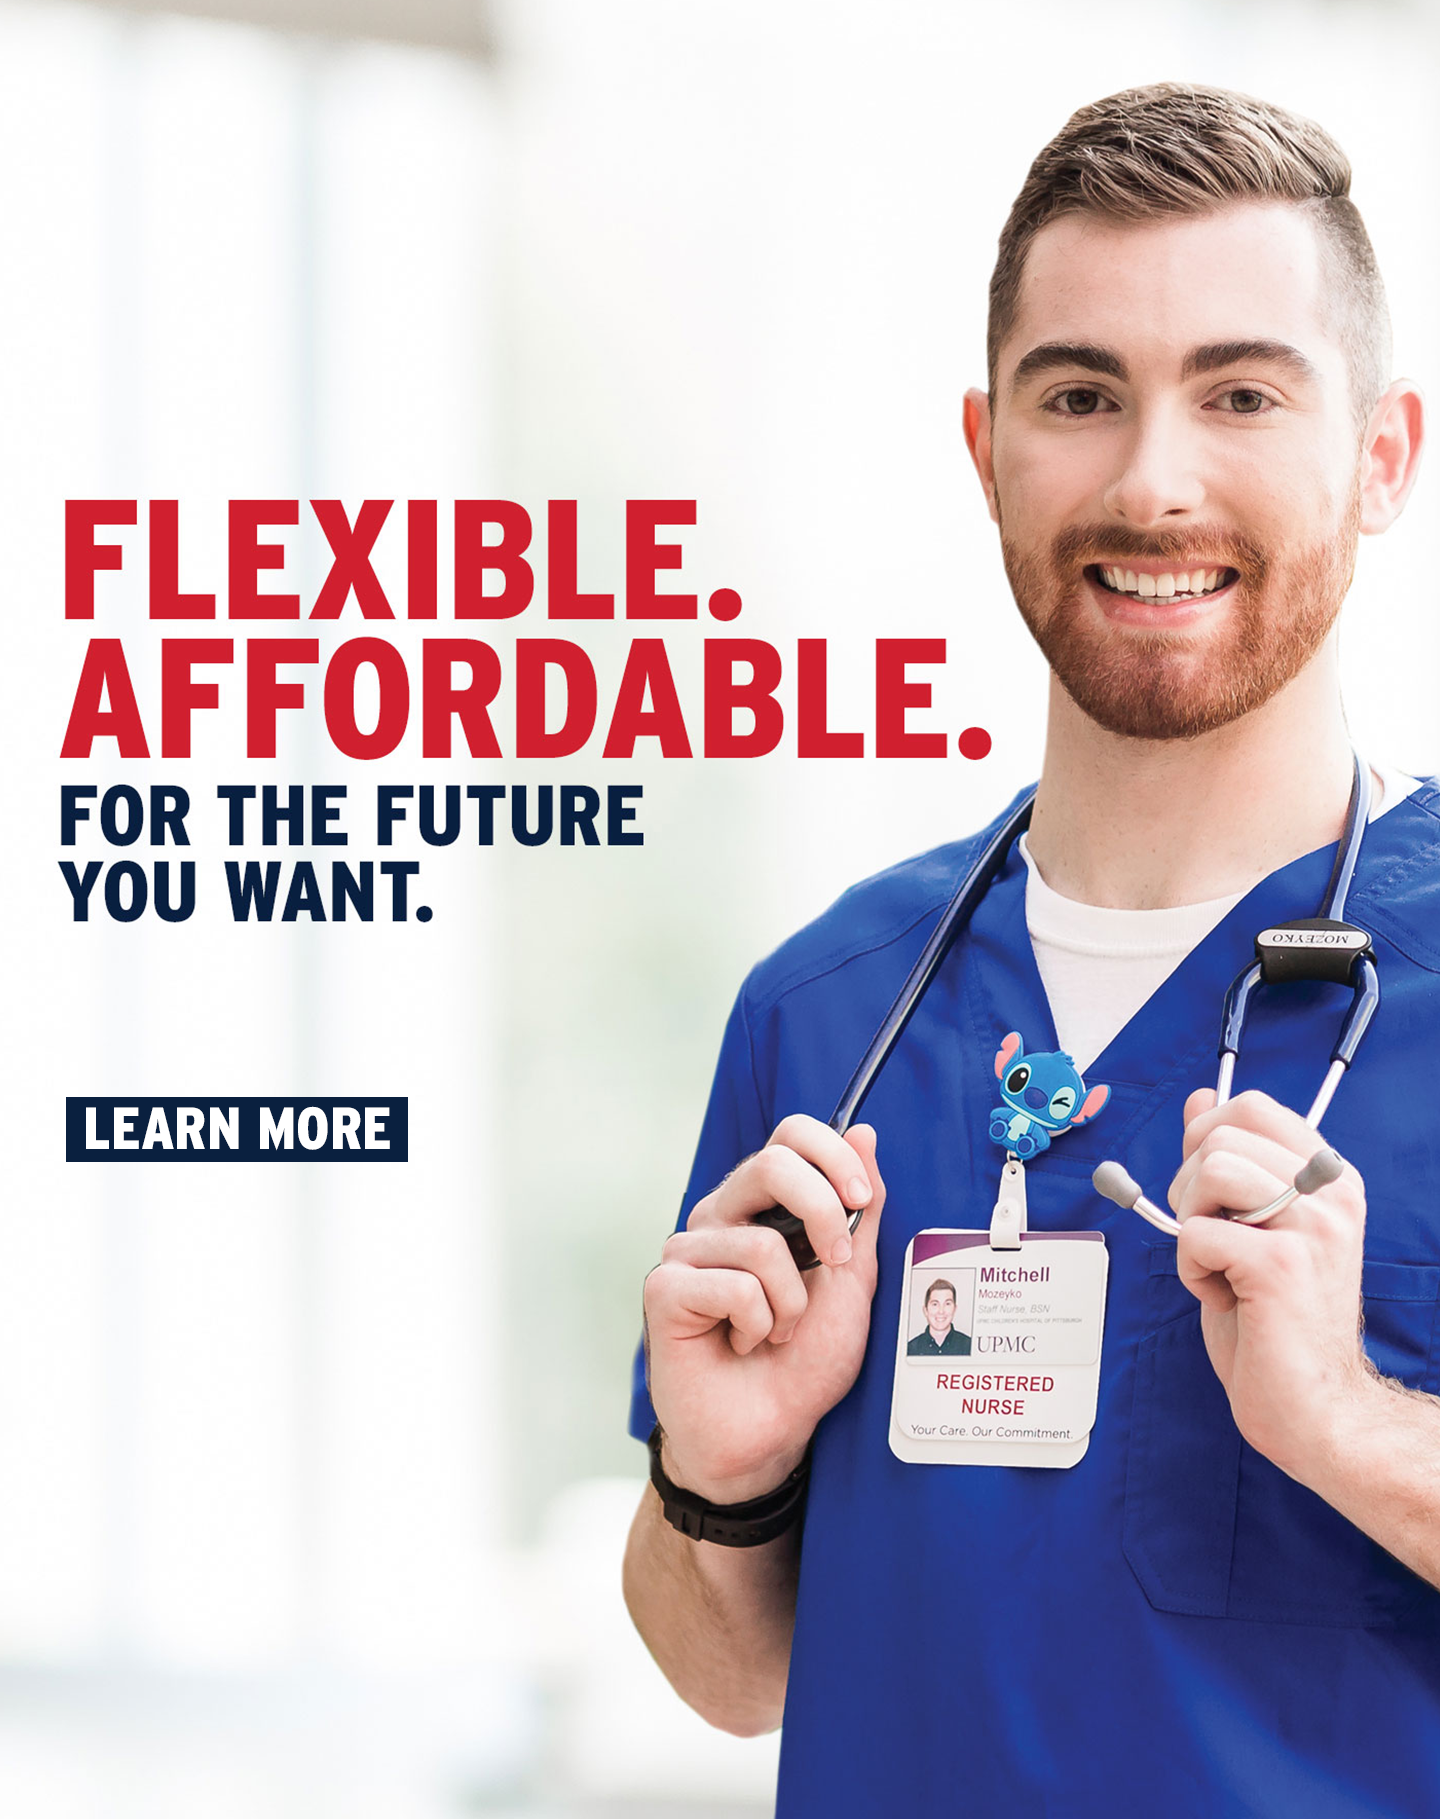 Flexible and Affordable